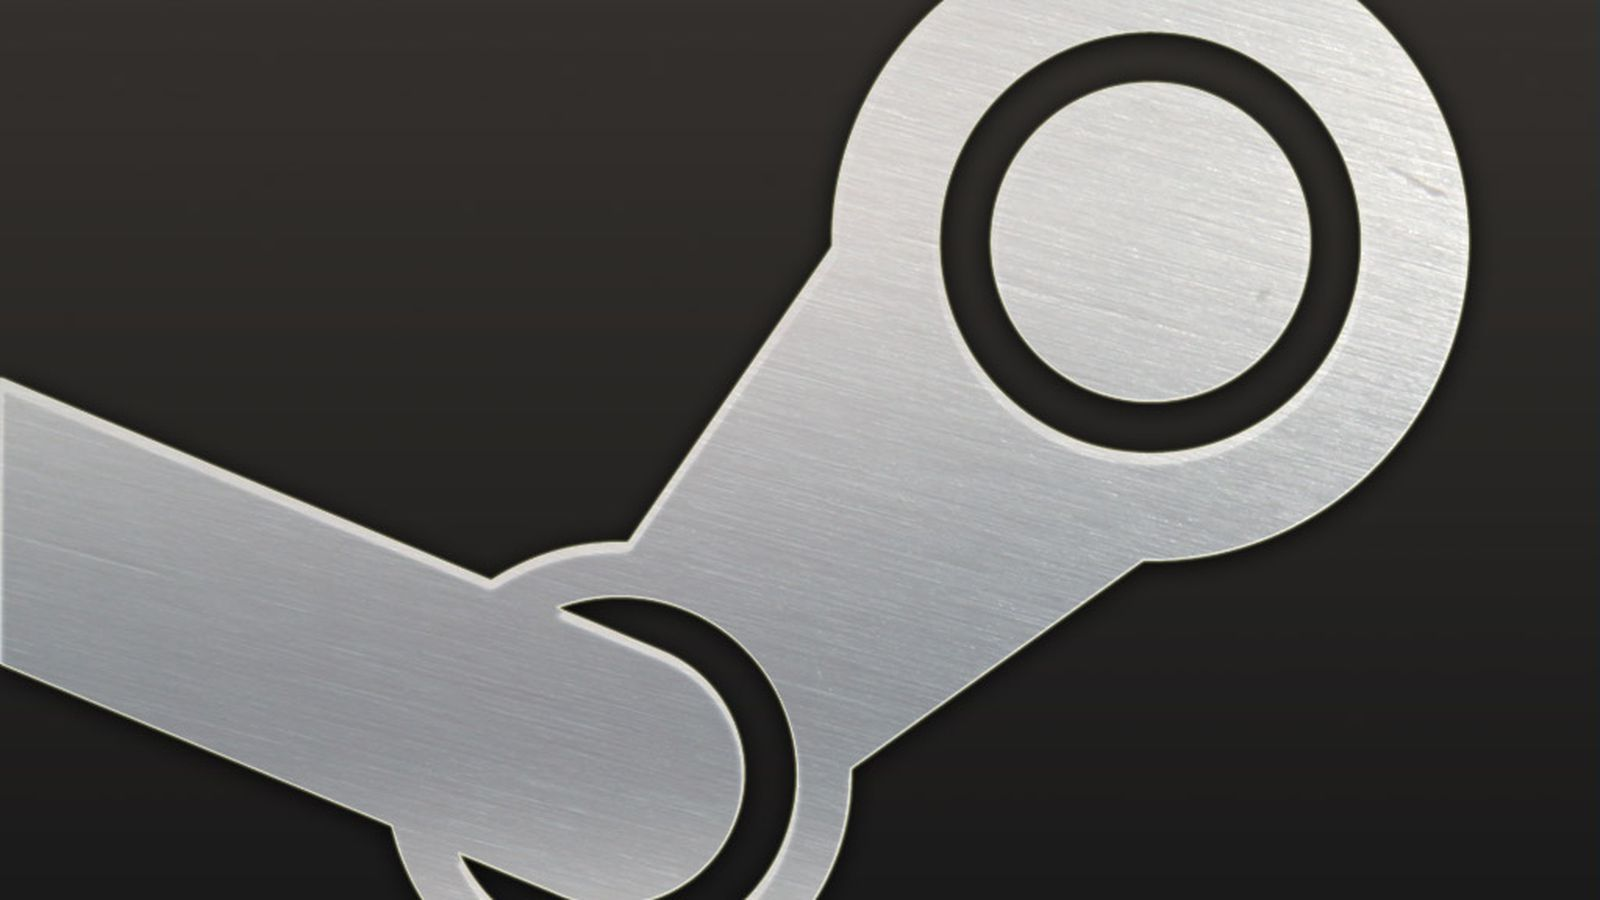 Steam Summer Sale date revealed by PayPal, as usual